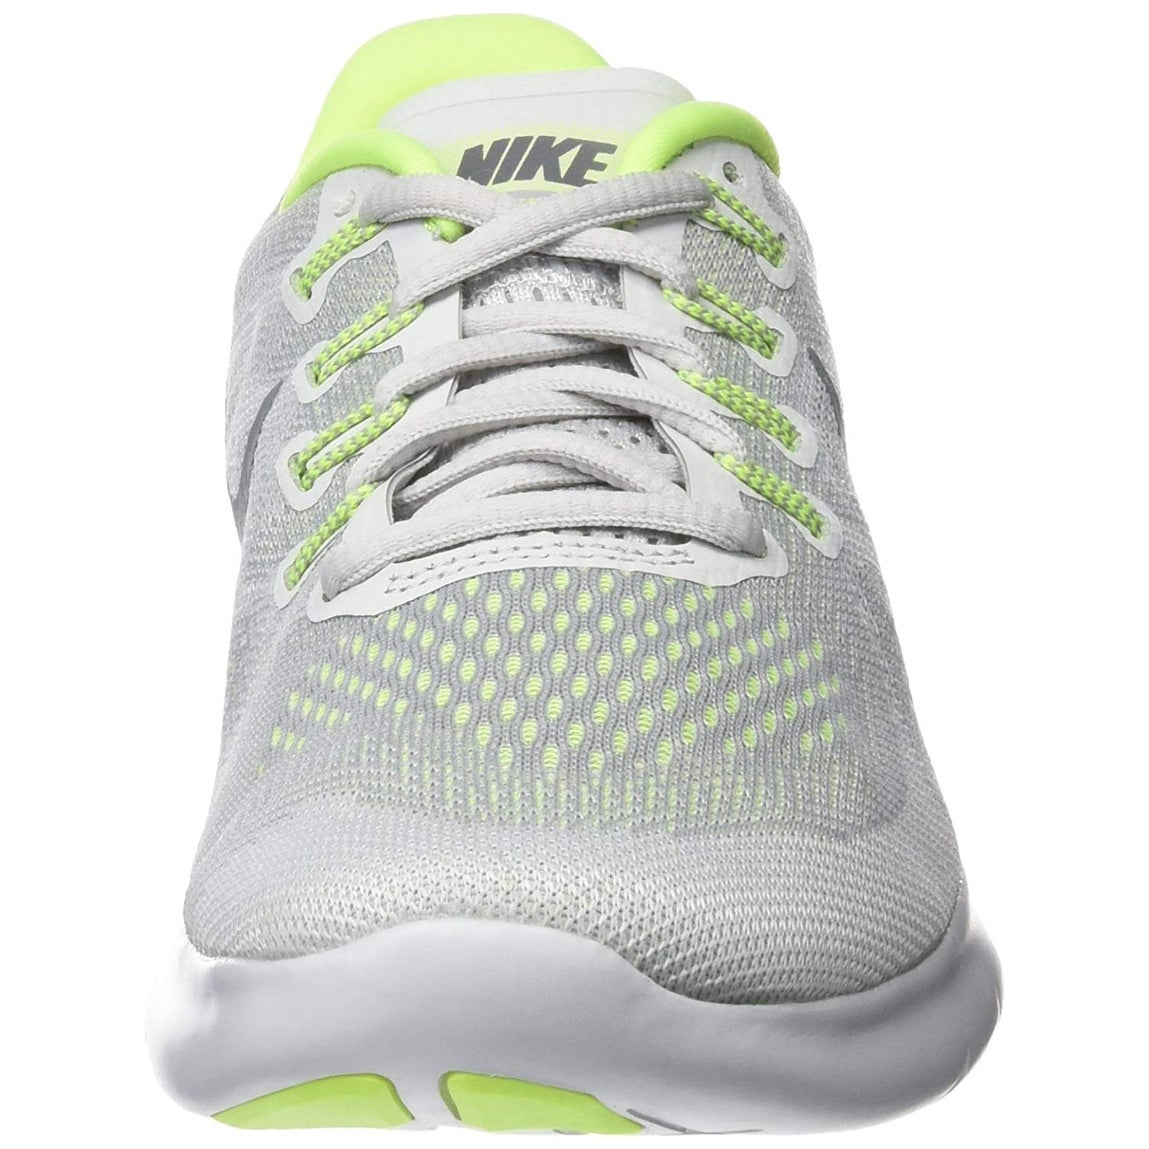 79aea4eab523 Shop Nike Womens Nike flex 2017 RN Fabric Low Top Lace Up Running Sneaker -  Free Shipping Today - Overstock - 22413187